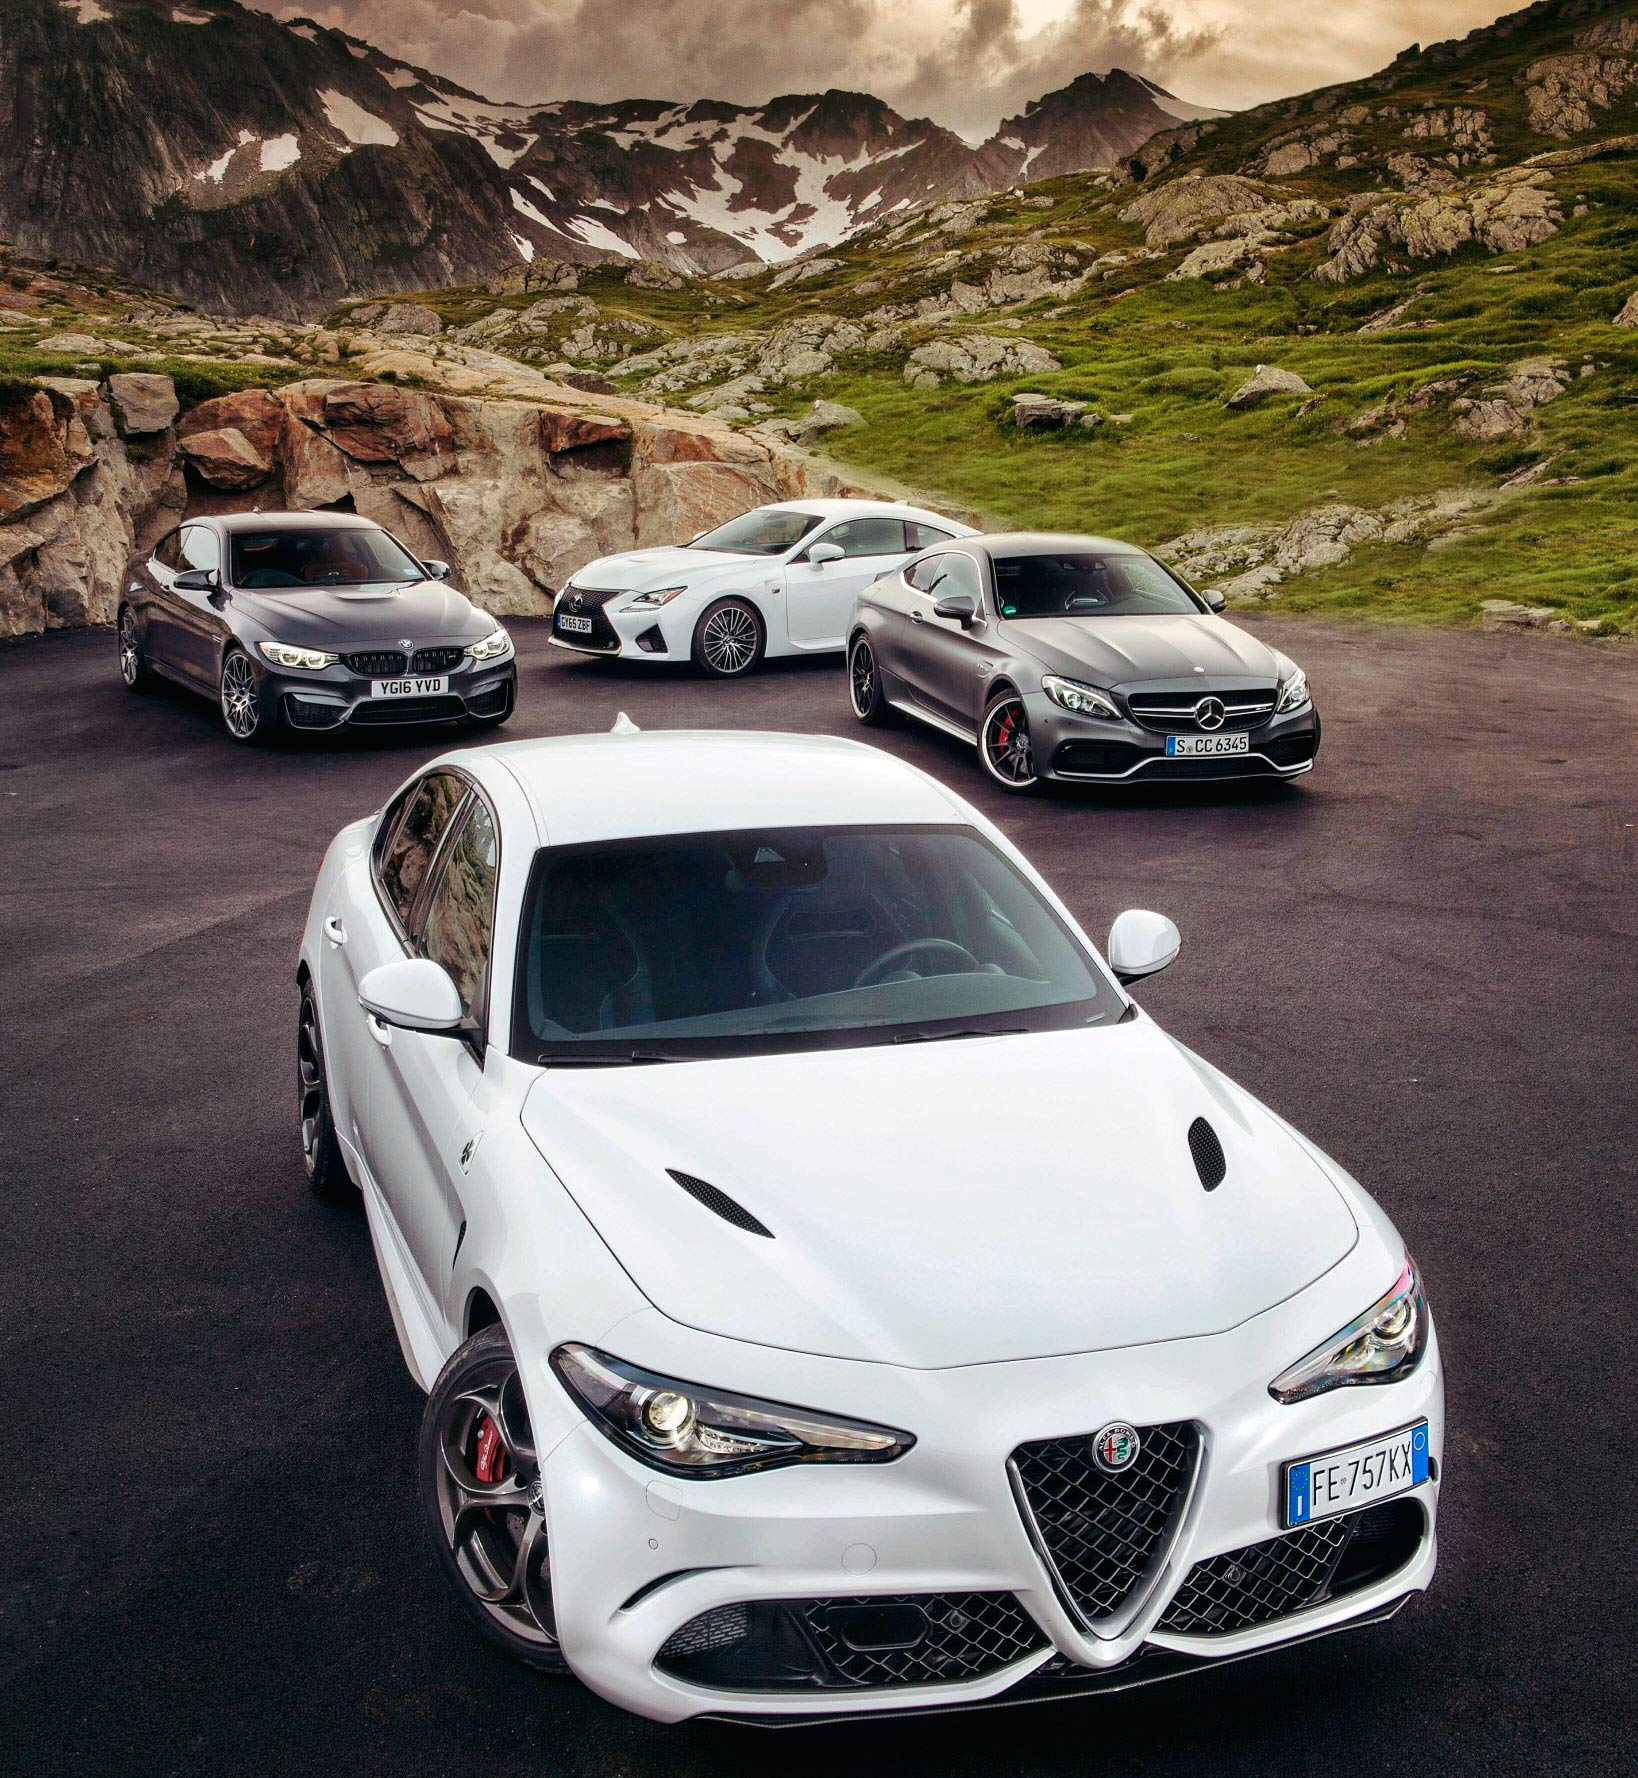 Alfa Romeo Giulia Quadrifoglio Typo 952 vs. BMW M4 Competition Package F82 vs. Mercedes-AMG C63 S Coupe C205 and Lexus RC-F